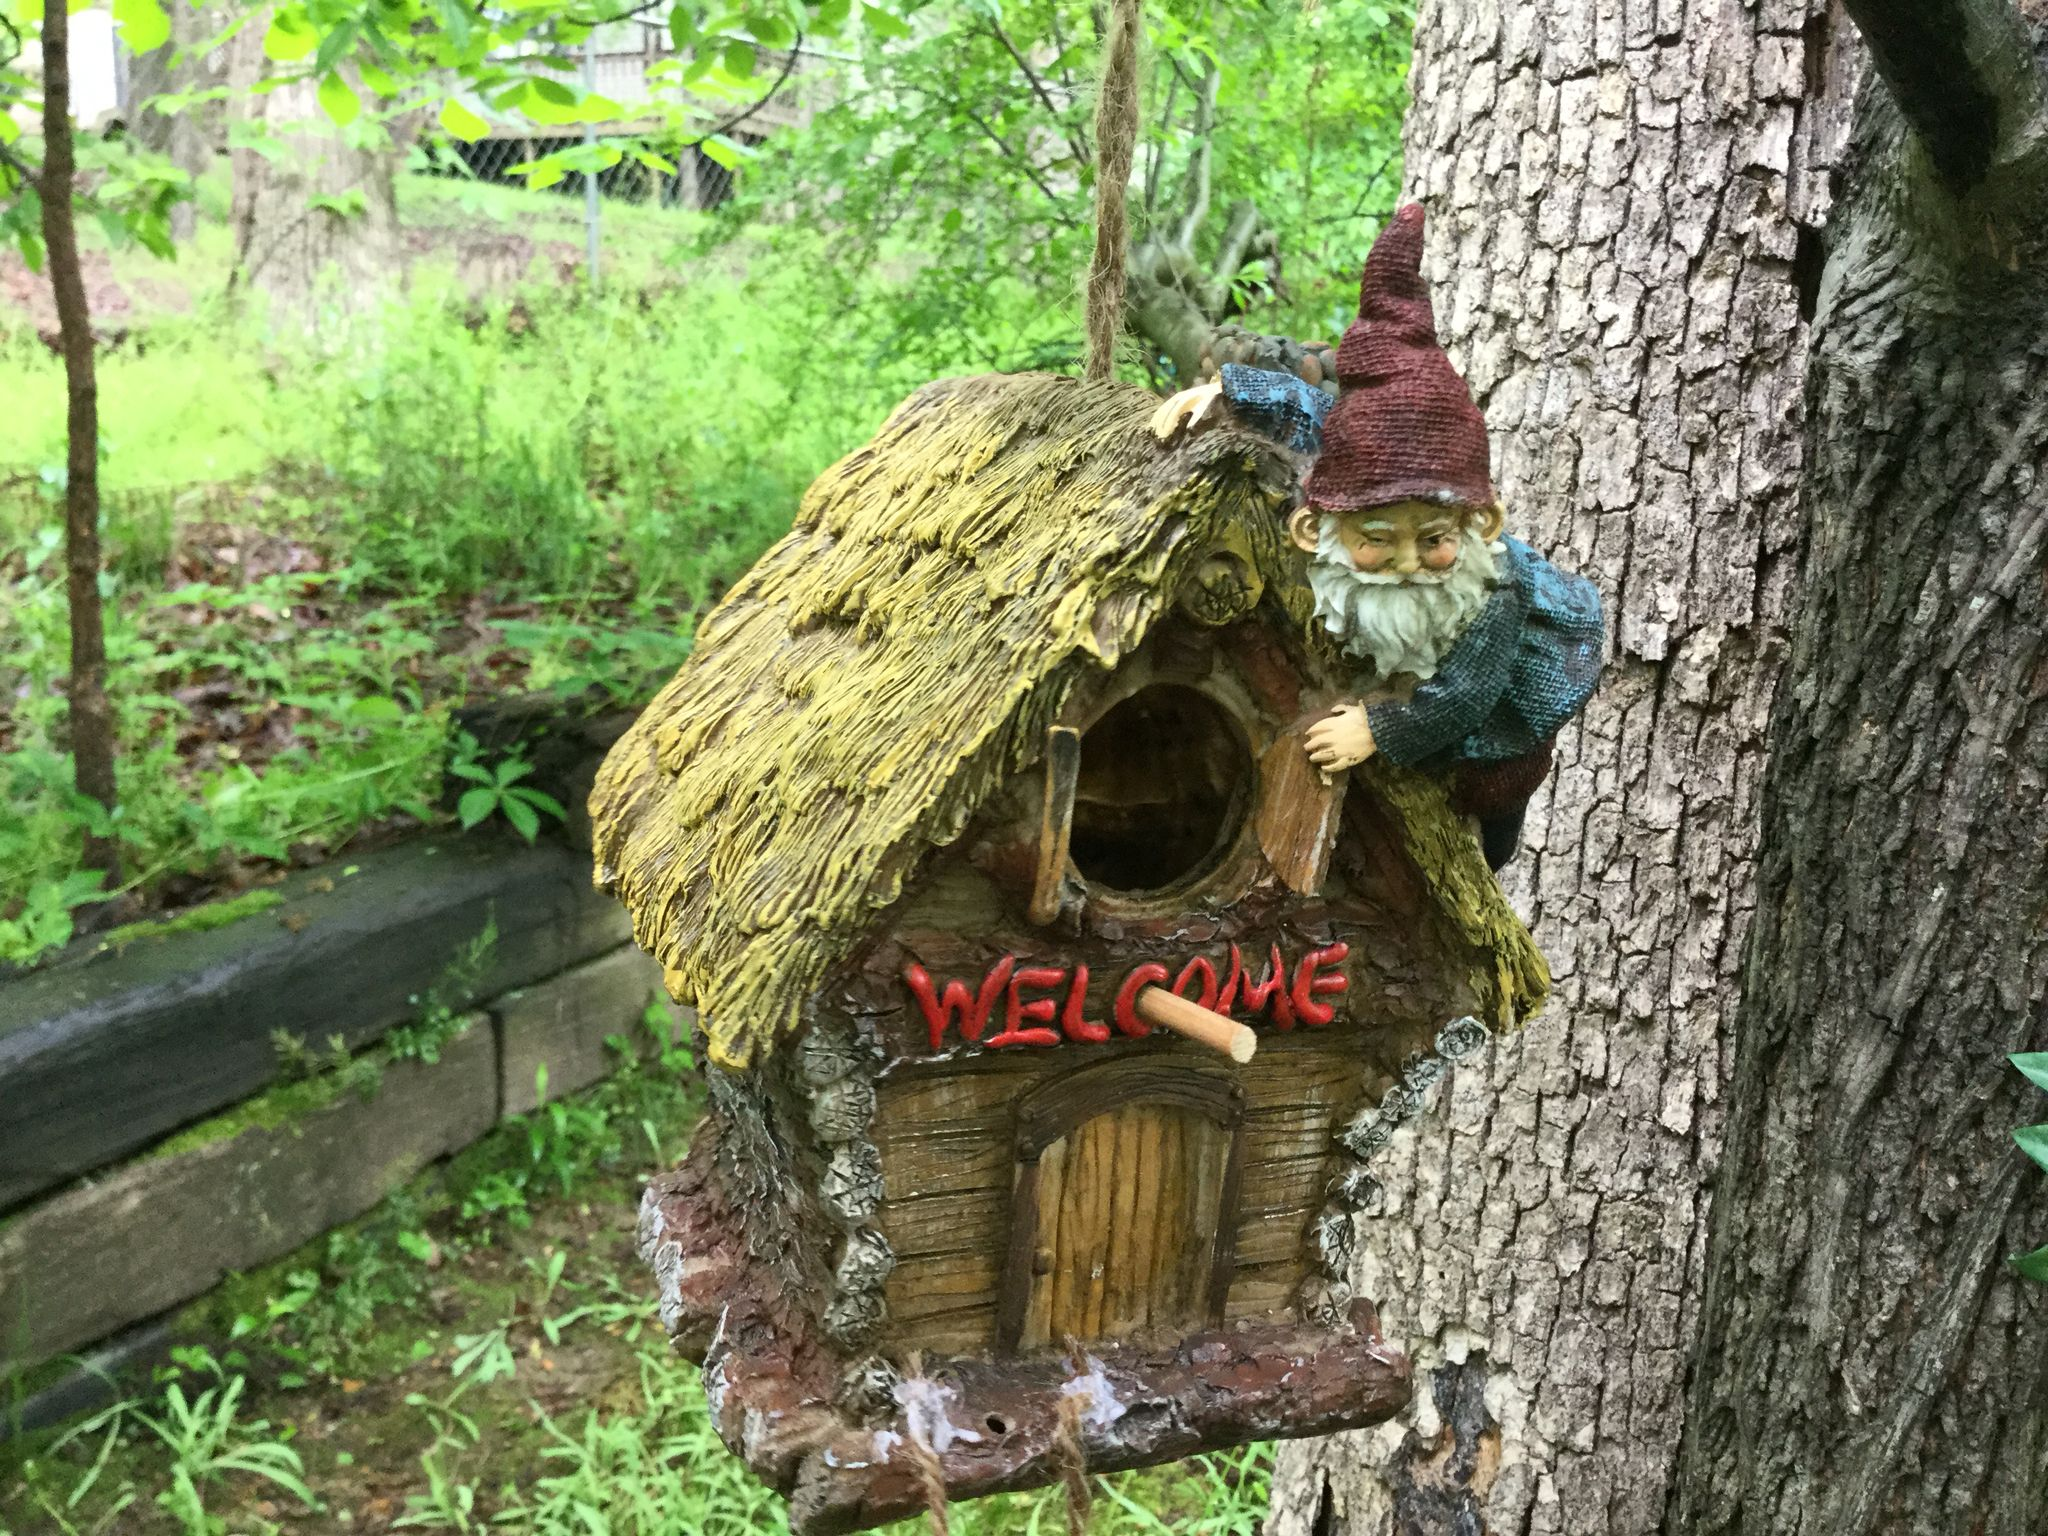 House garden trees  He swings from the trees in my knome garden   fairy gardens by